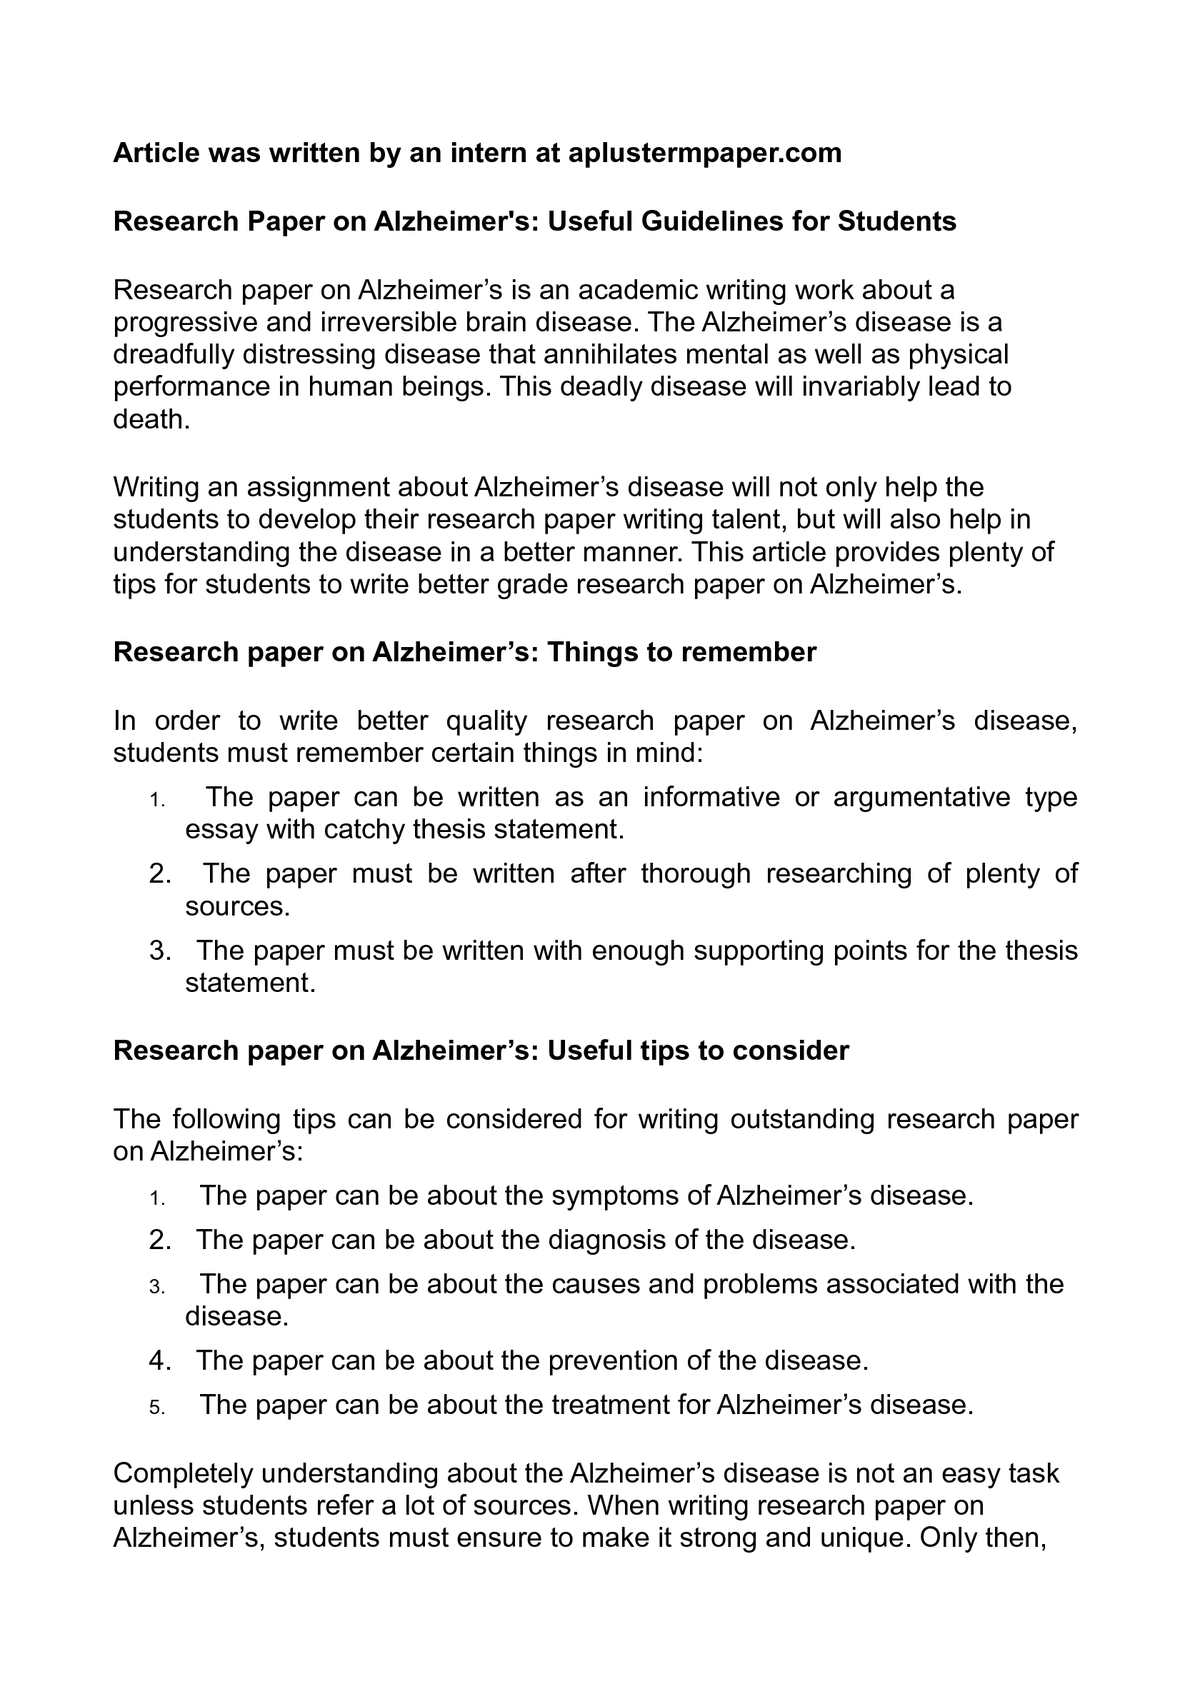 007 How To Make Research Paper Incredible A Interesting Thesis Flow Full